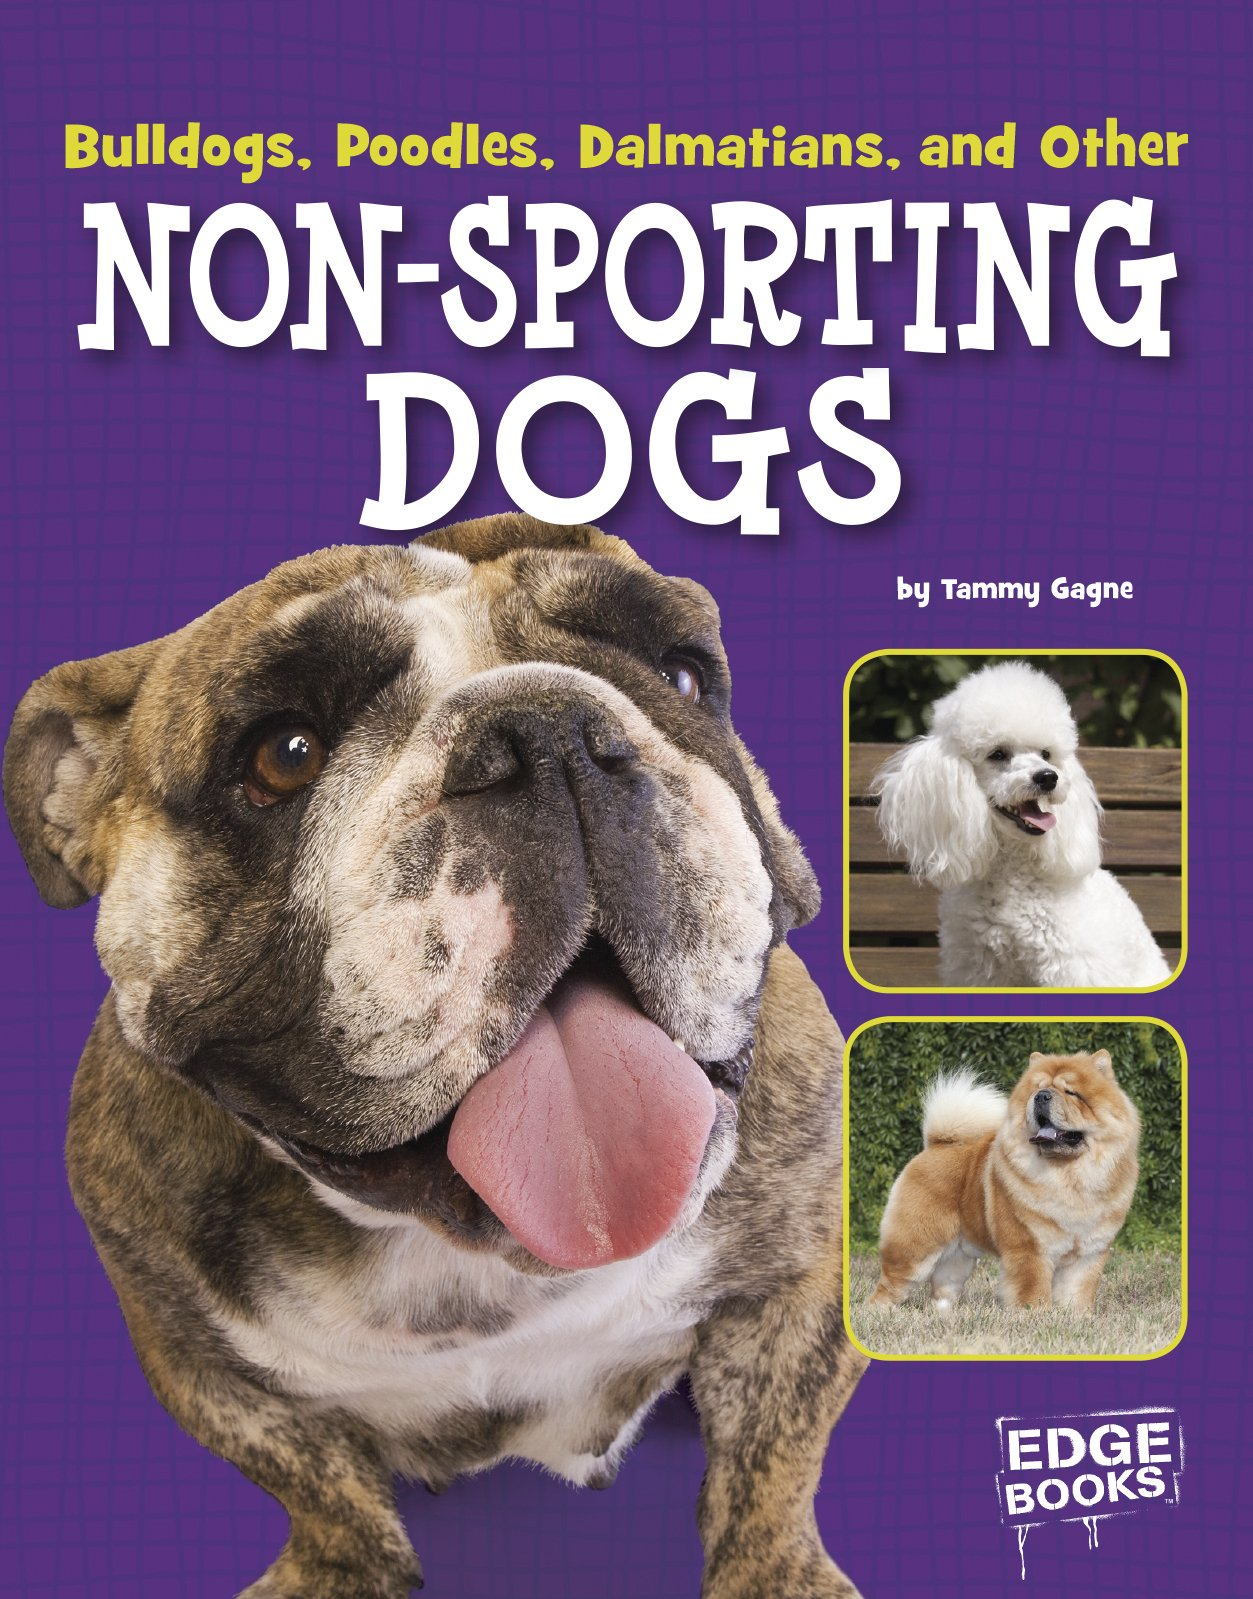 Bulldogs, Poodles, Dalmatians, and Other Non-Sporting Dogs (Dog Encyclopedias)